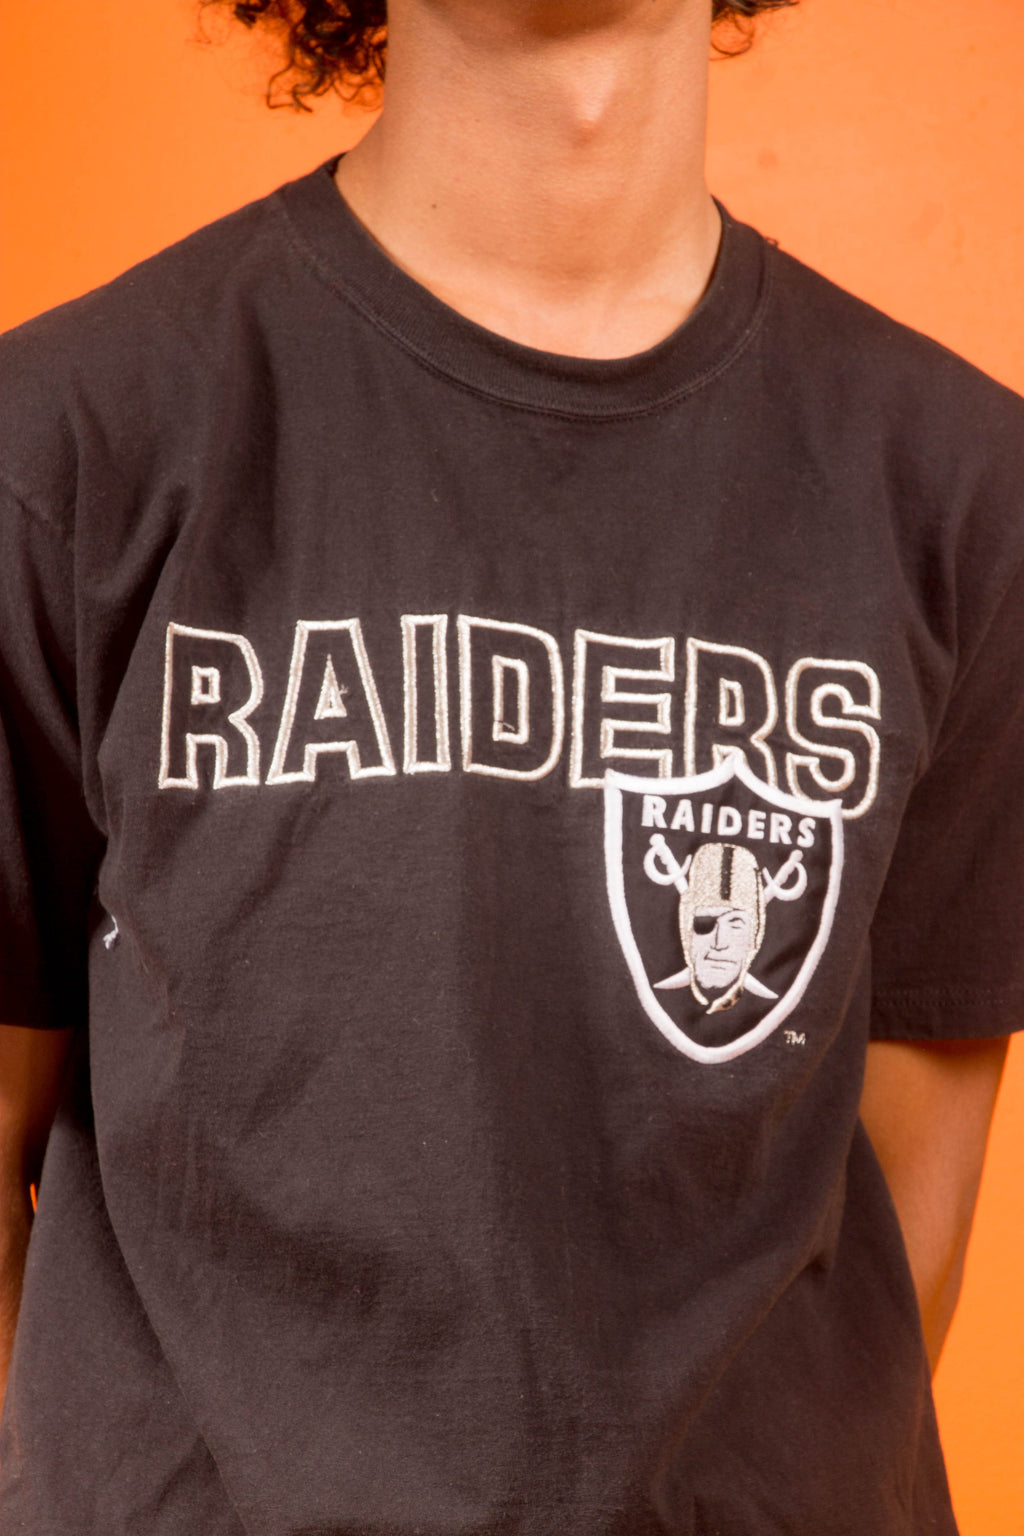 Vintage - embroidered raiders T shirt